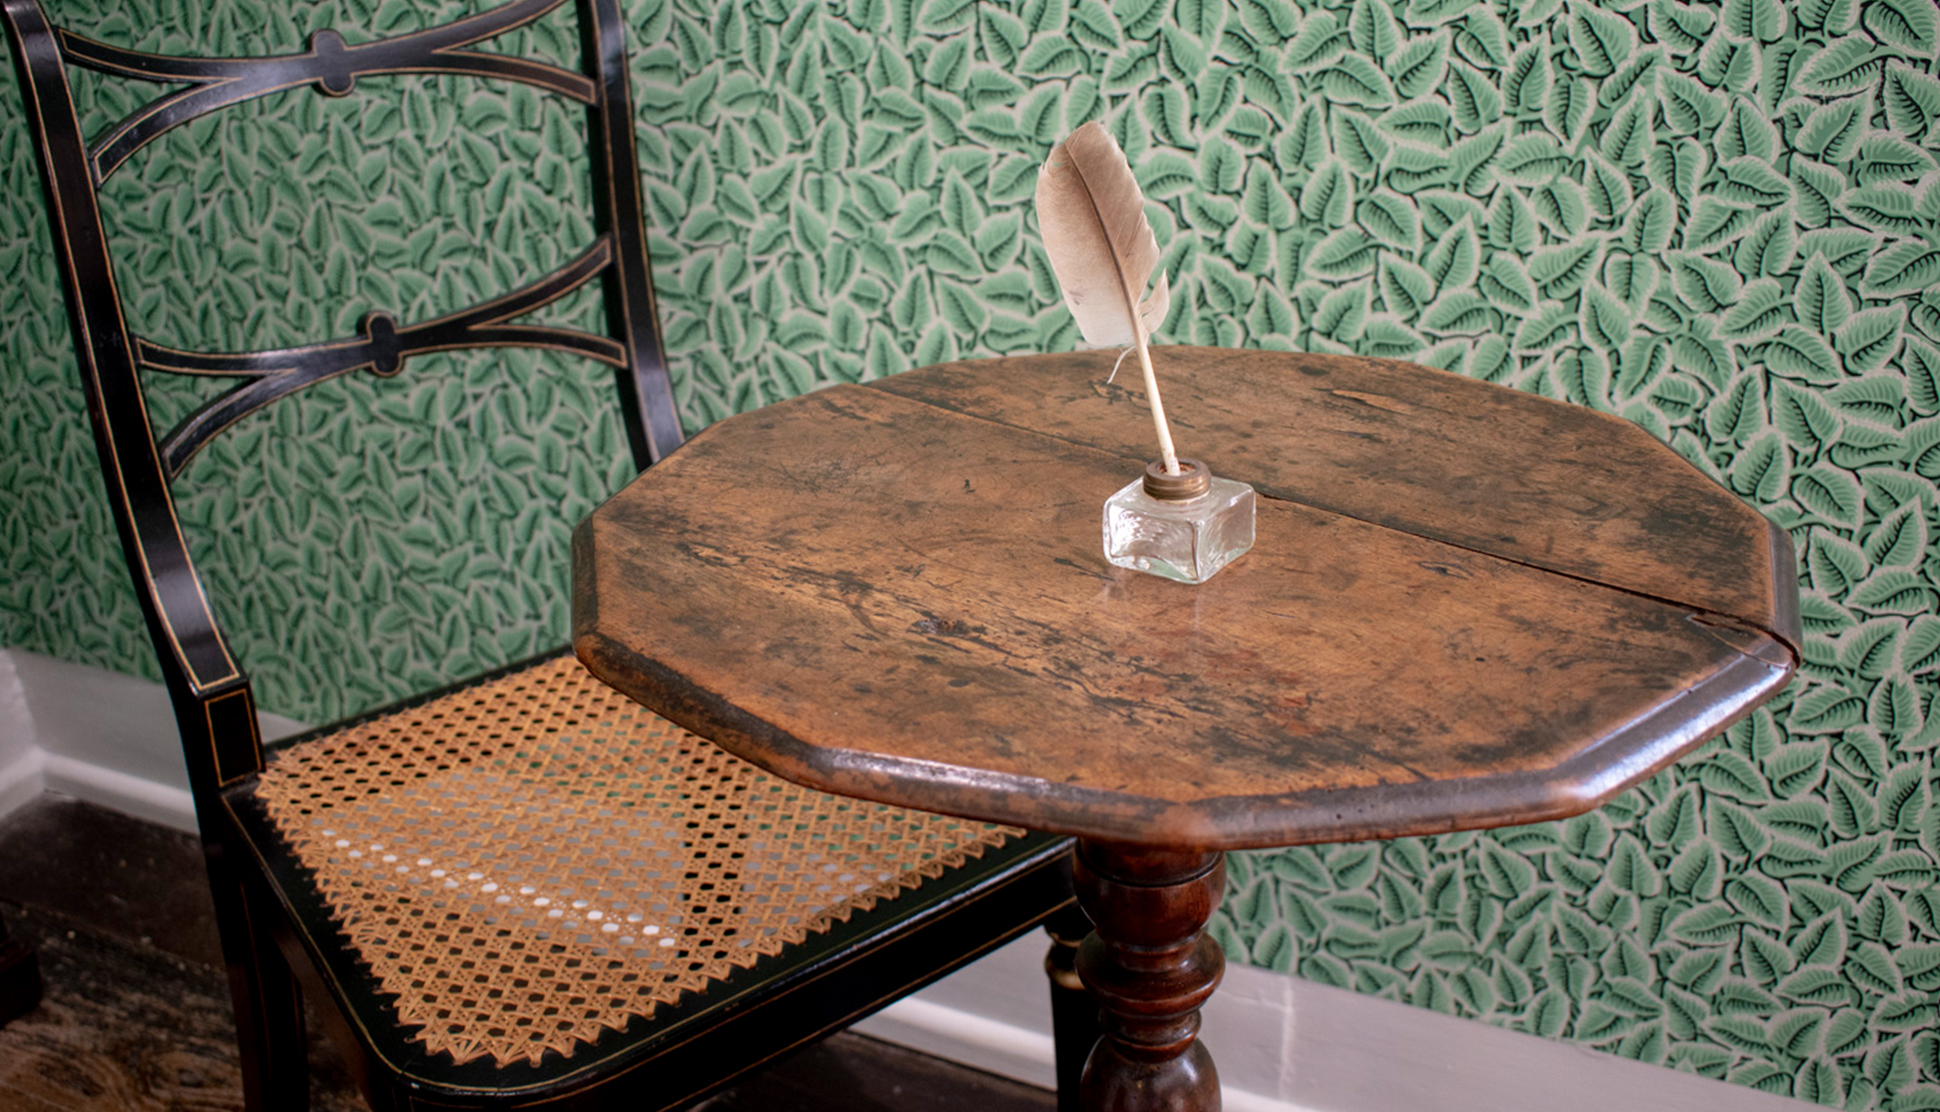 Jane Austen's Writing Table at Jane Austen's House